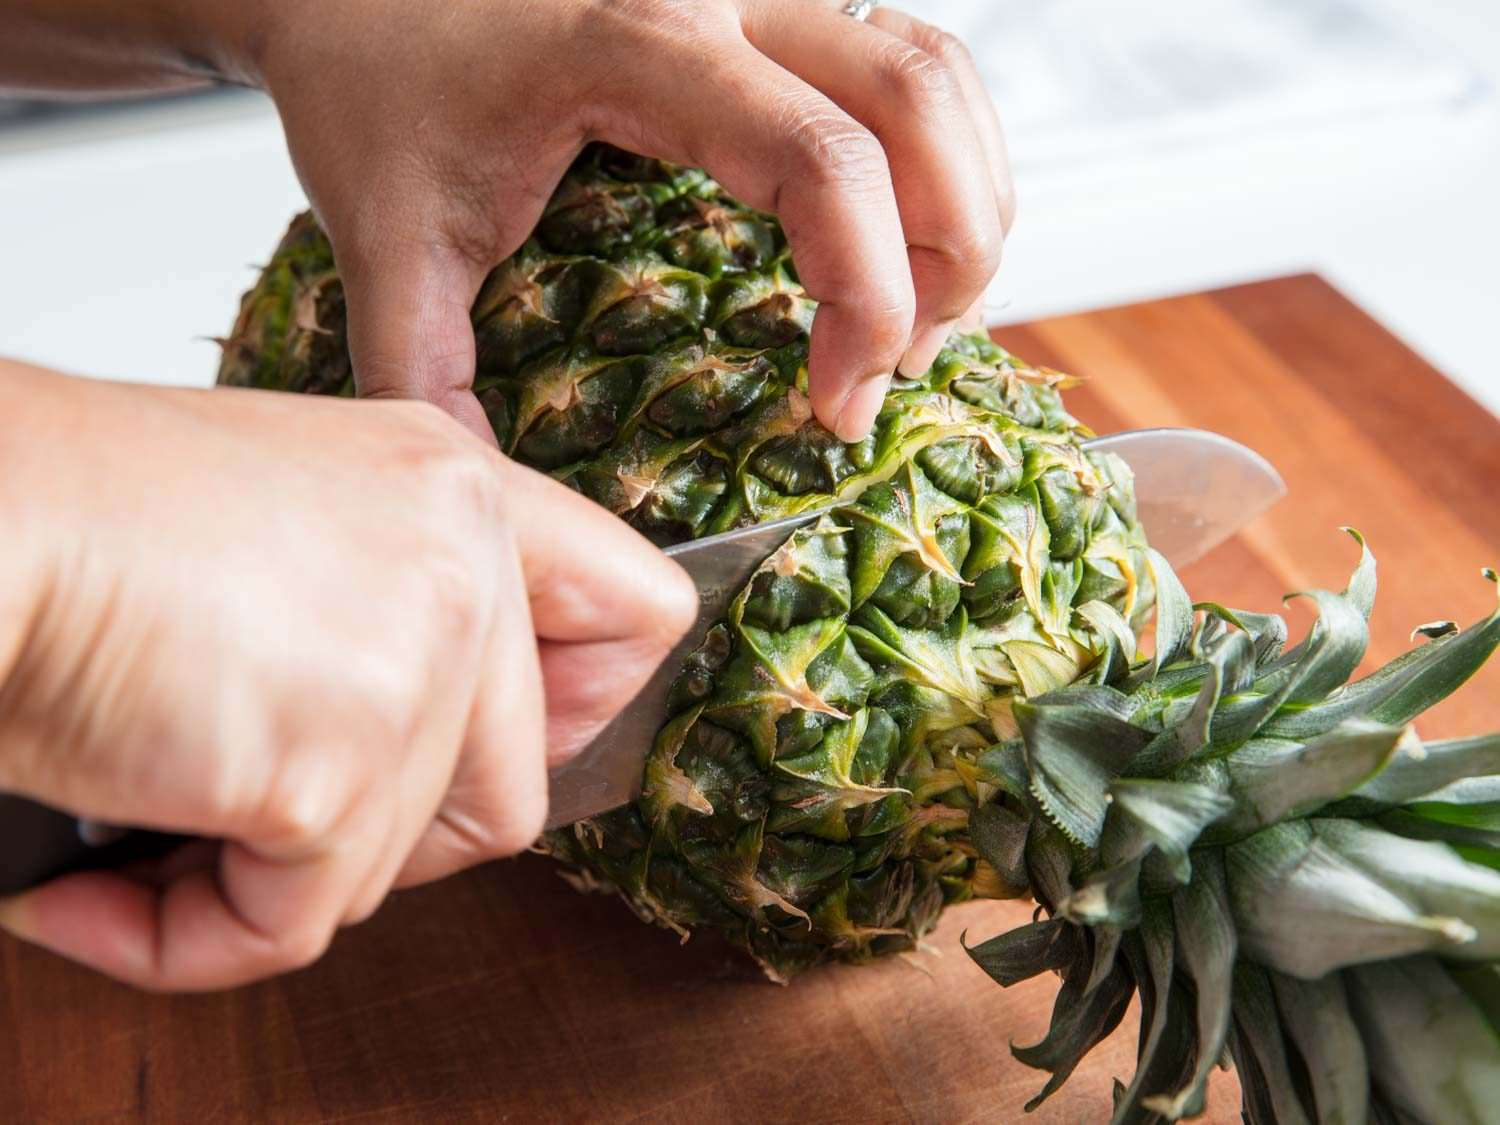 A knife slicing off the top of a pineapple.